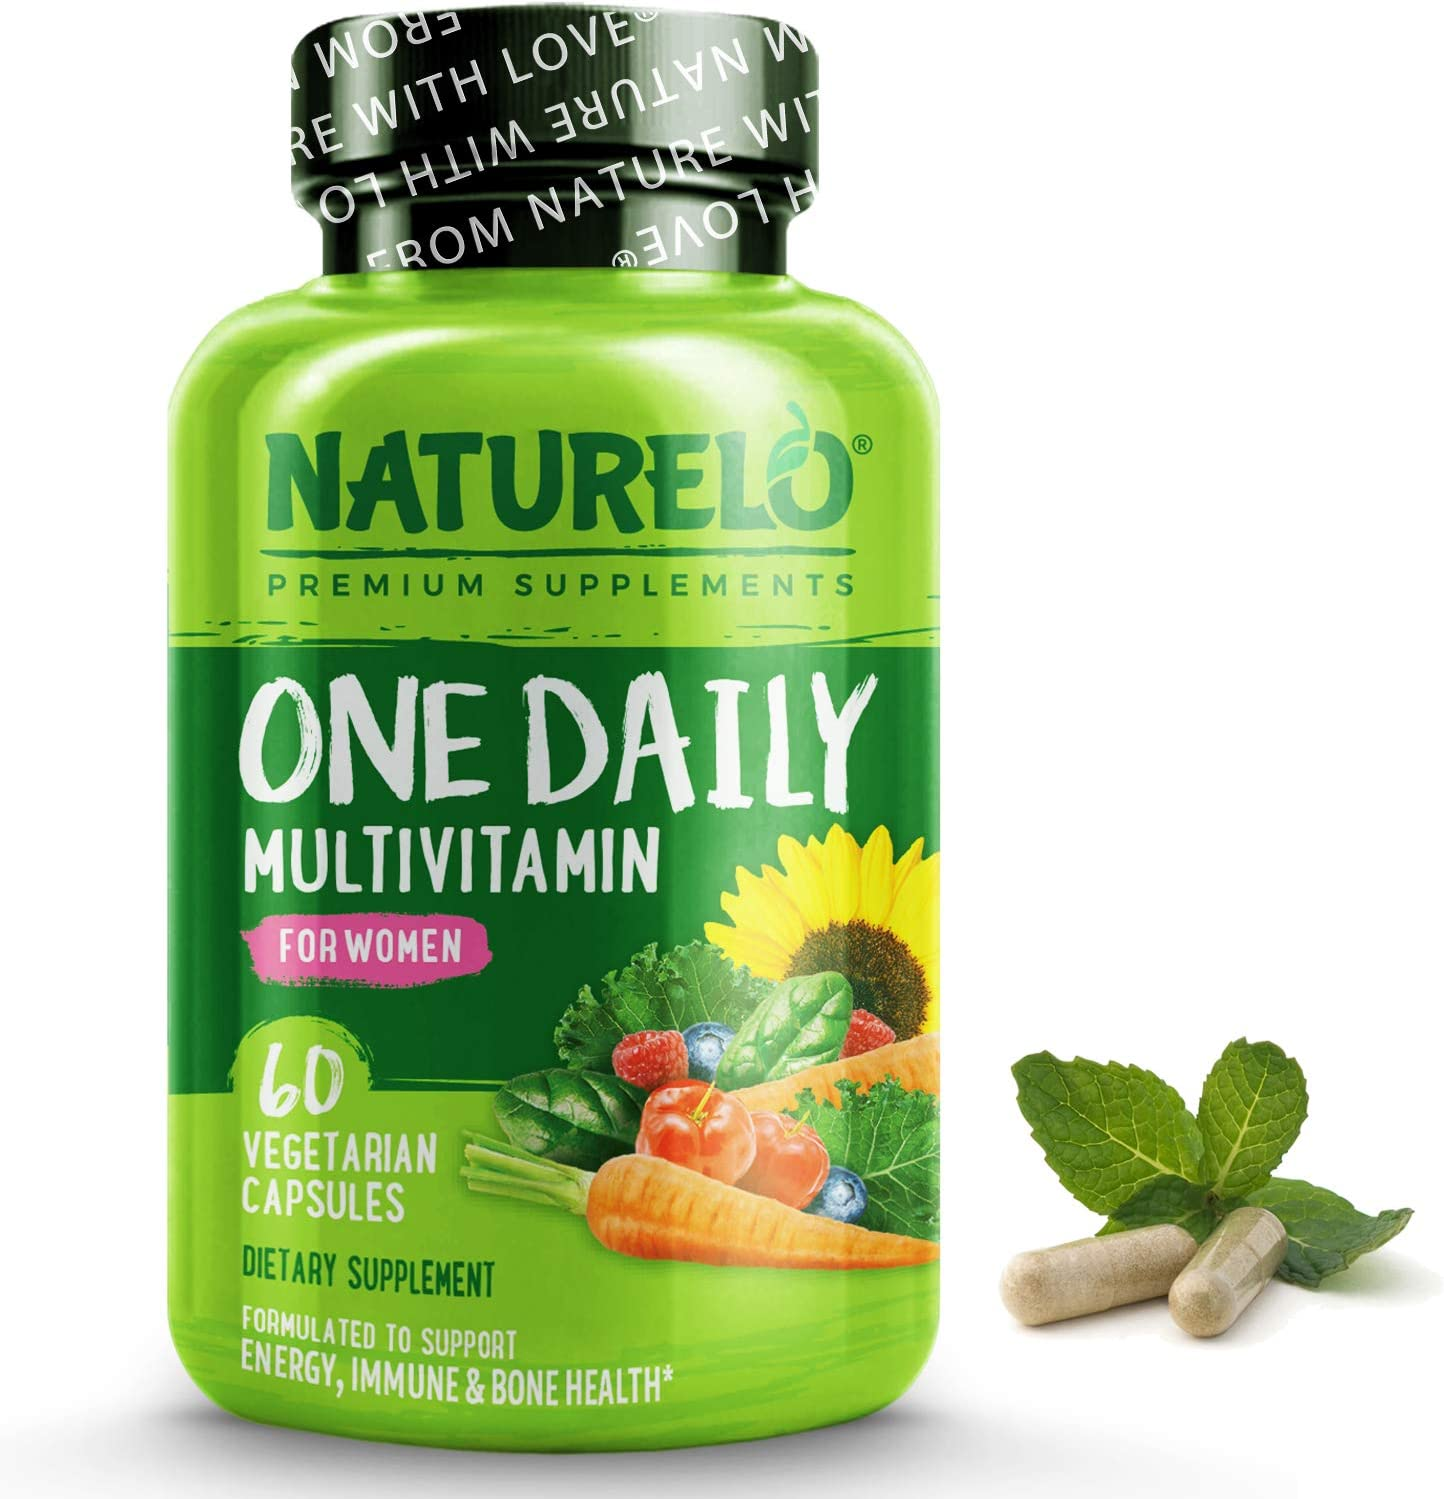 NATURELO One Daily Multivitamin for Women - Energy Support - Whole Food Supplement to Nourish Hair, Skin, Nails - Non-GMO - No Soy - Gluten Free - 60 Capsules | 2 Month Supply